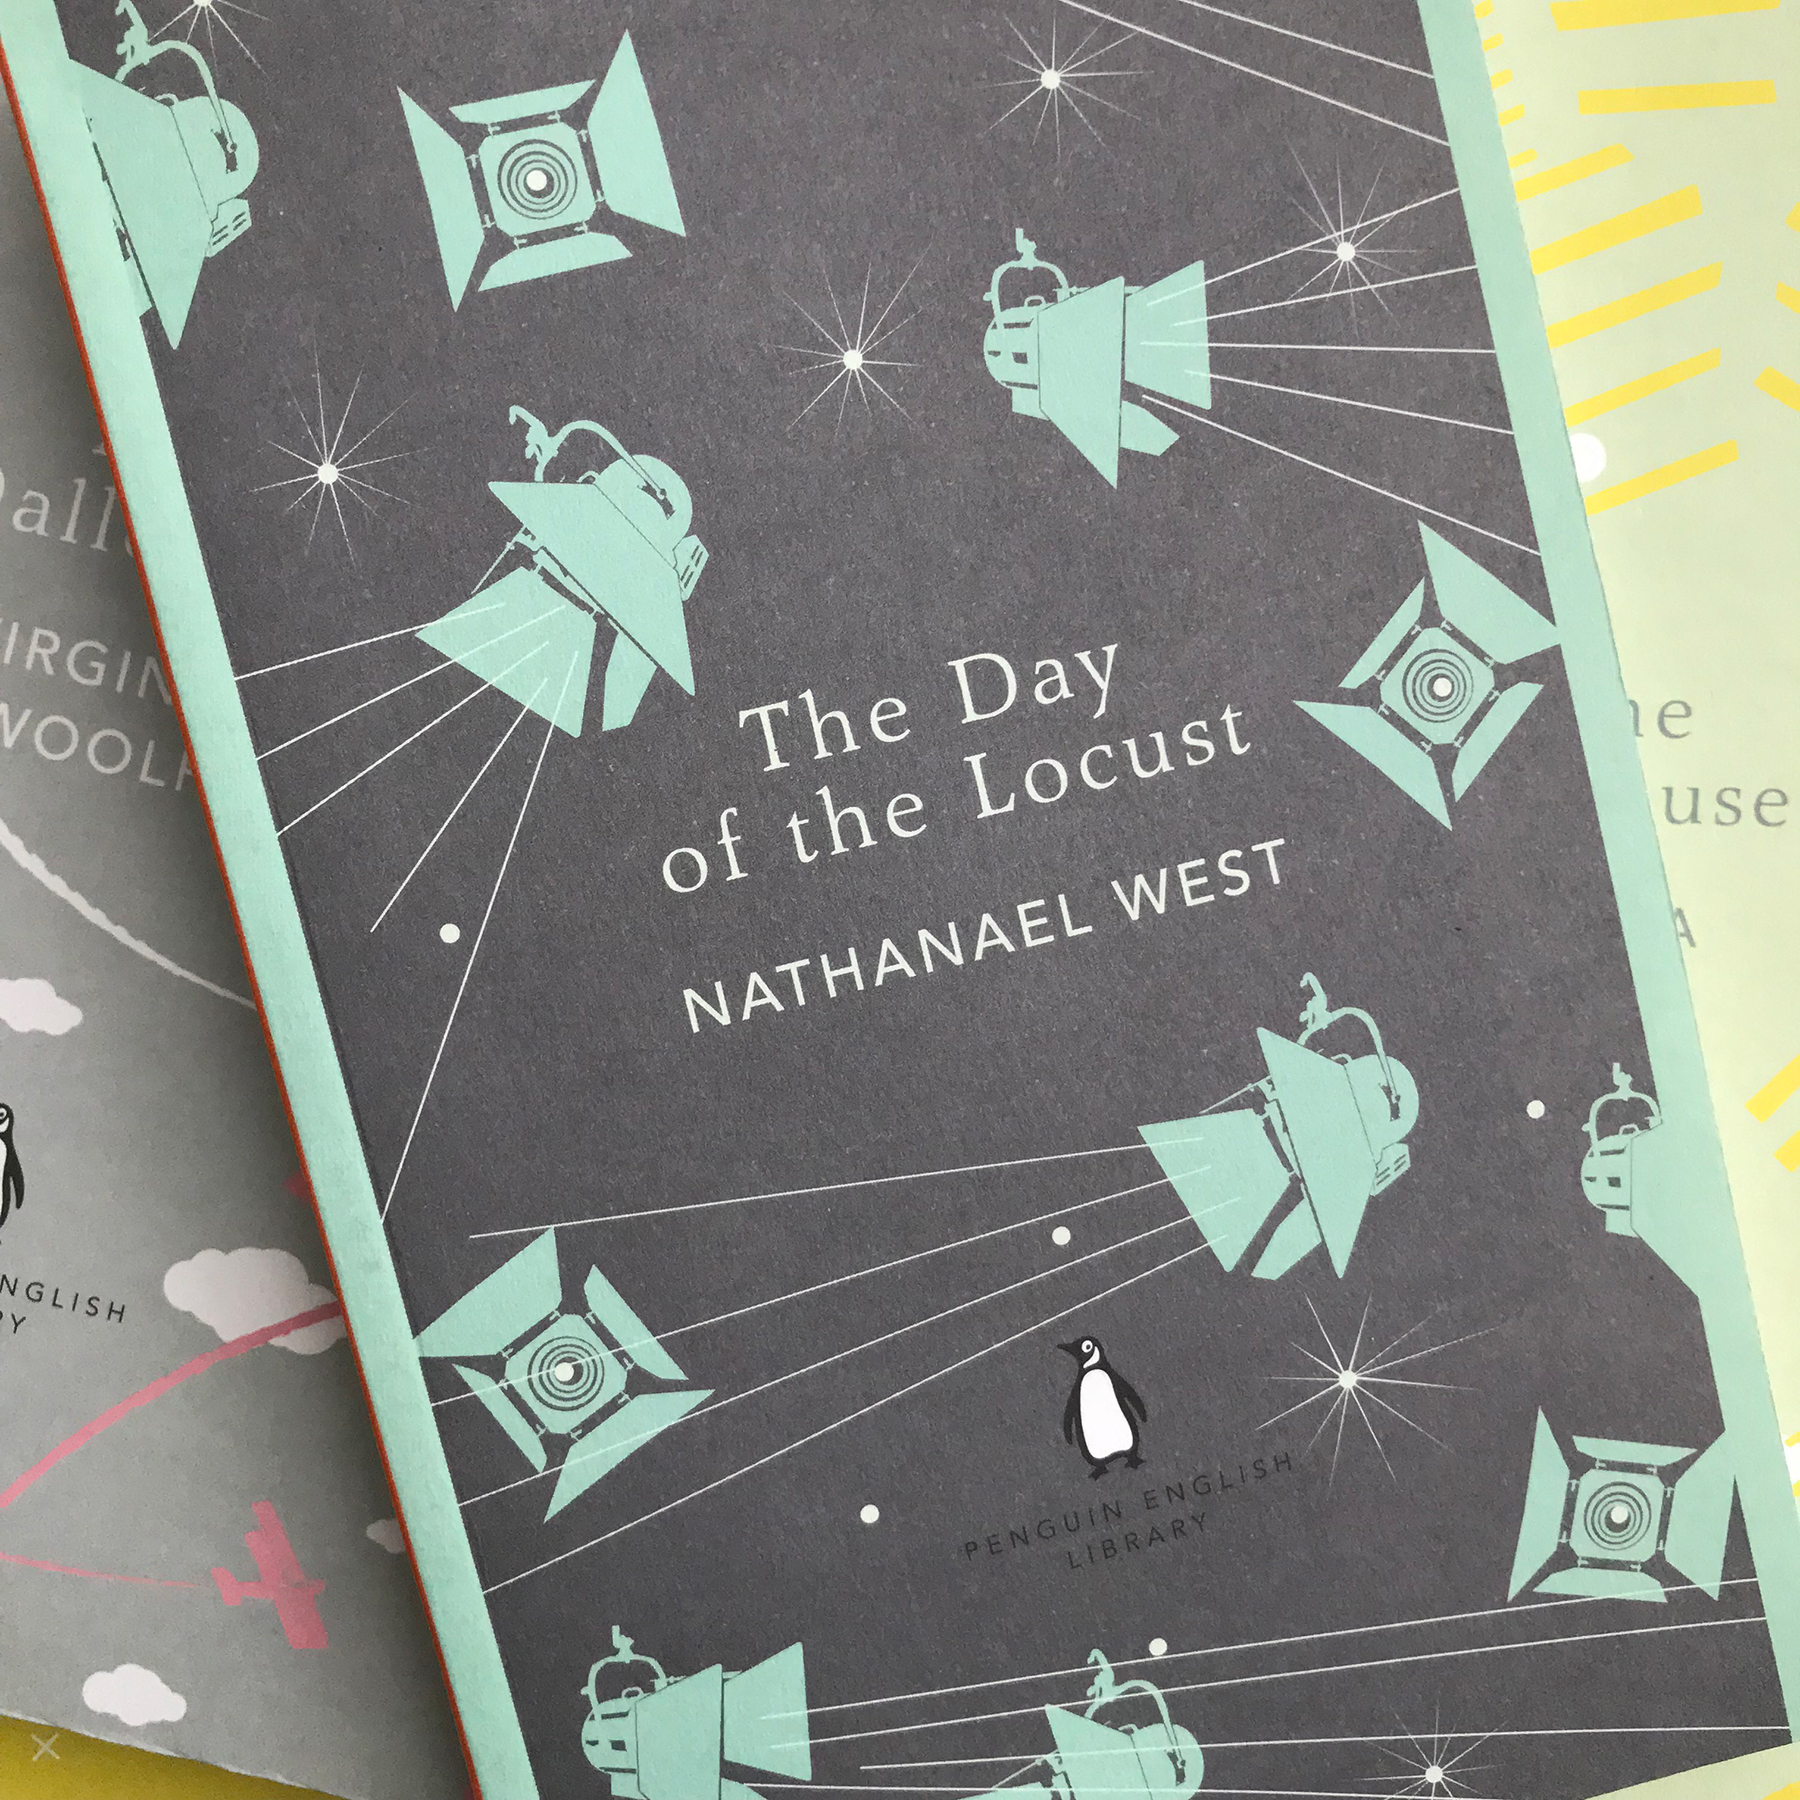 PEL The Day of The Locust Nathanael West